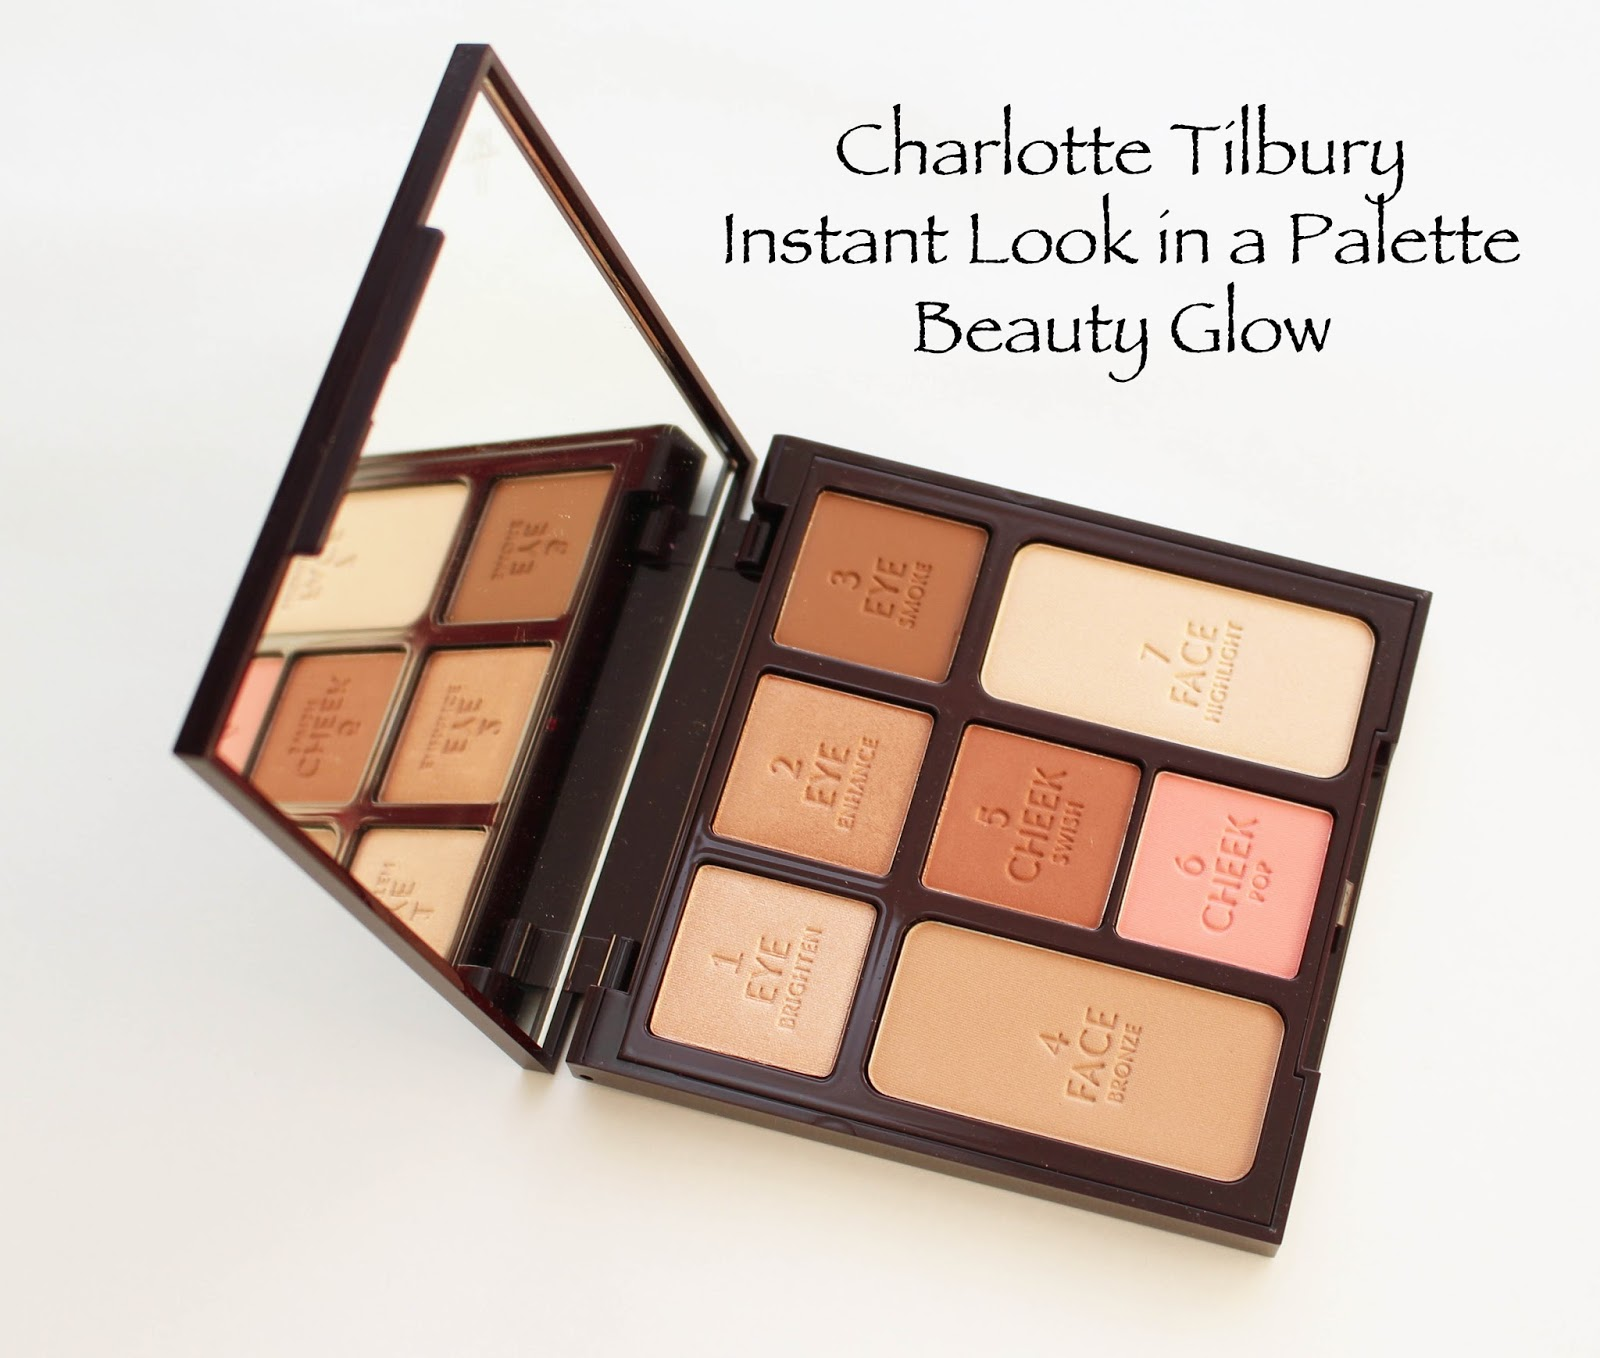 f019e73f5d99 The nearest Nordstrom store to me finally has a Charlotte Tilbury counter